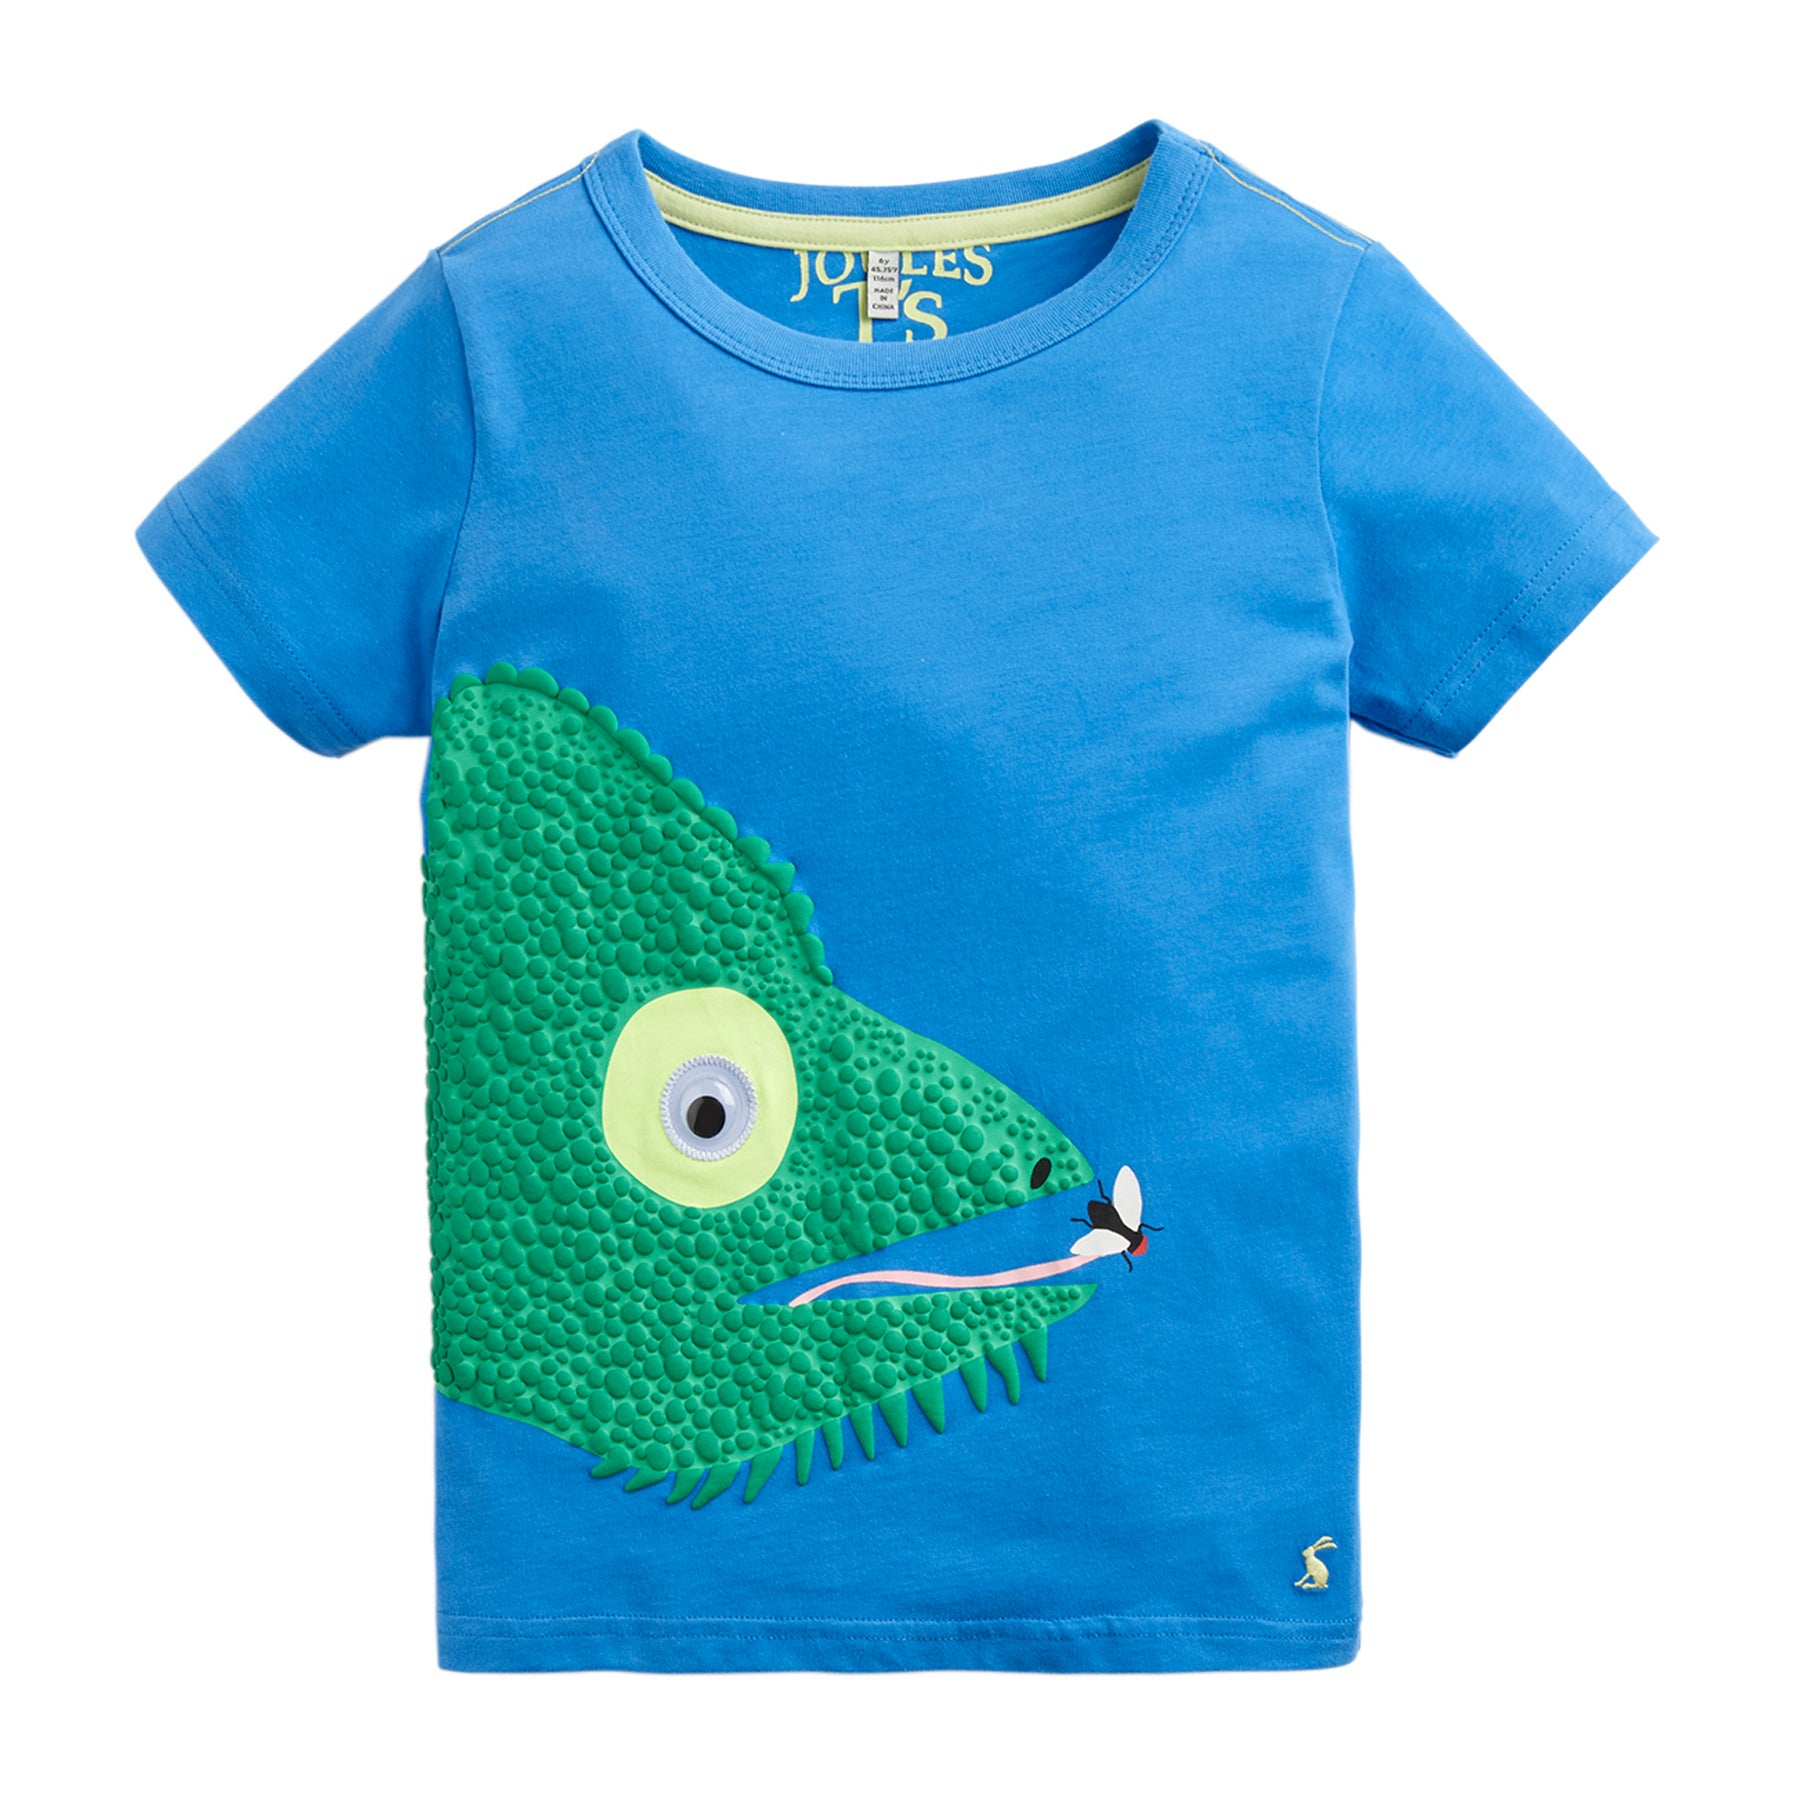 Joules Archie Applique Boys Short Sleeve T-Shirt - Blue Chameleon